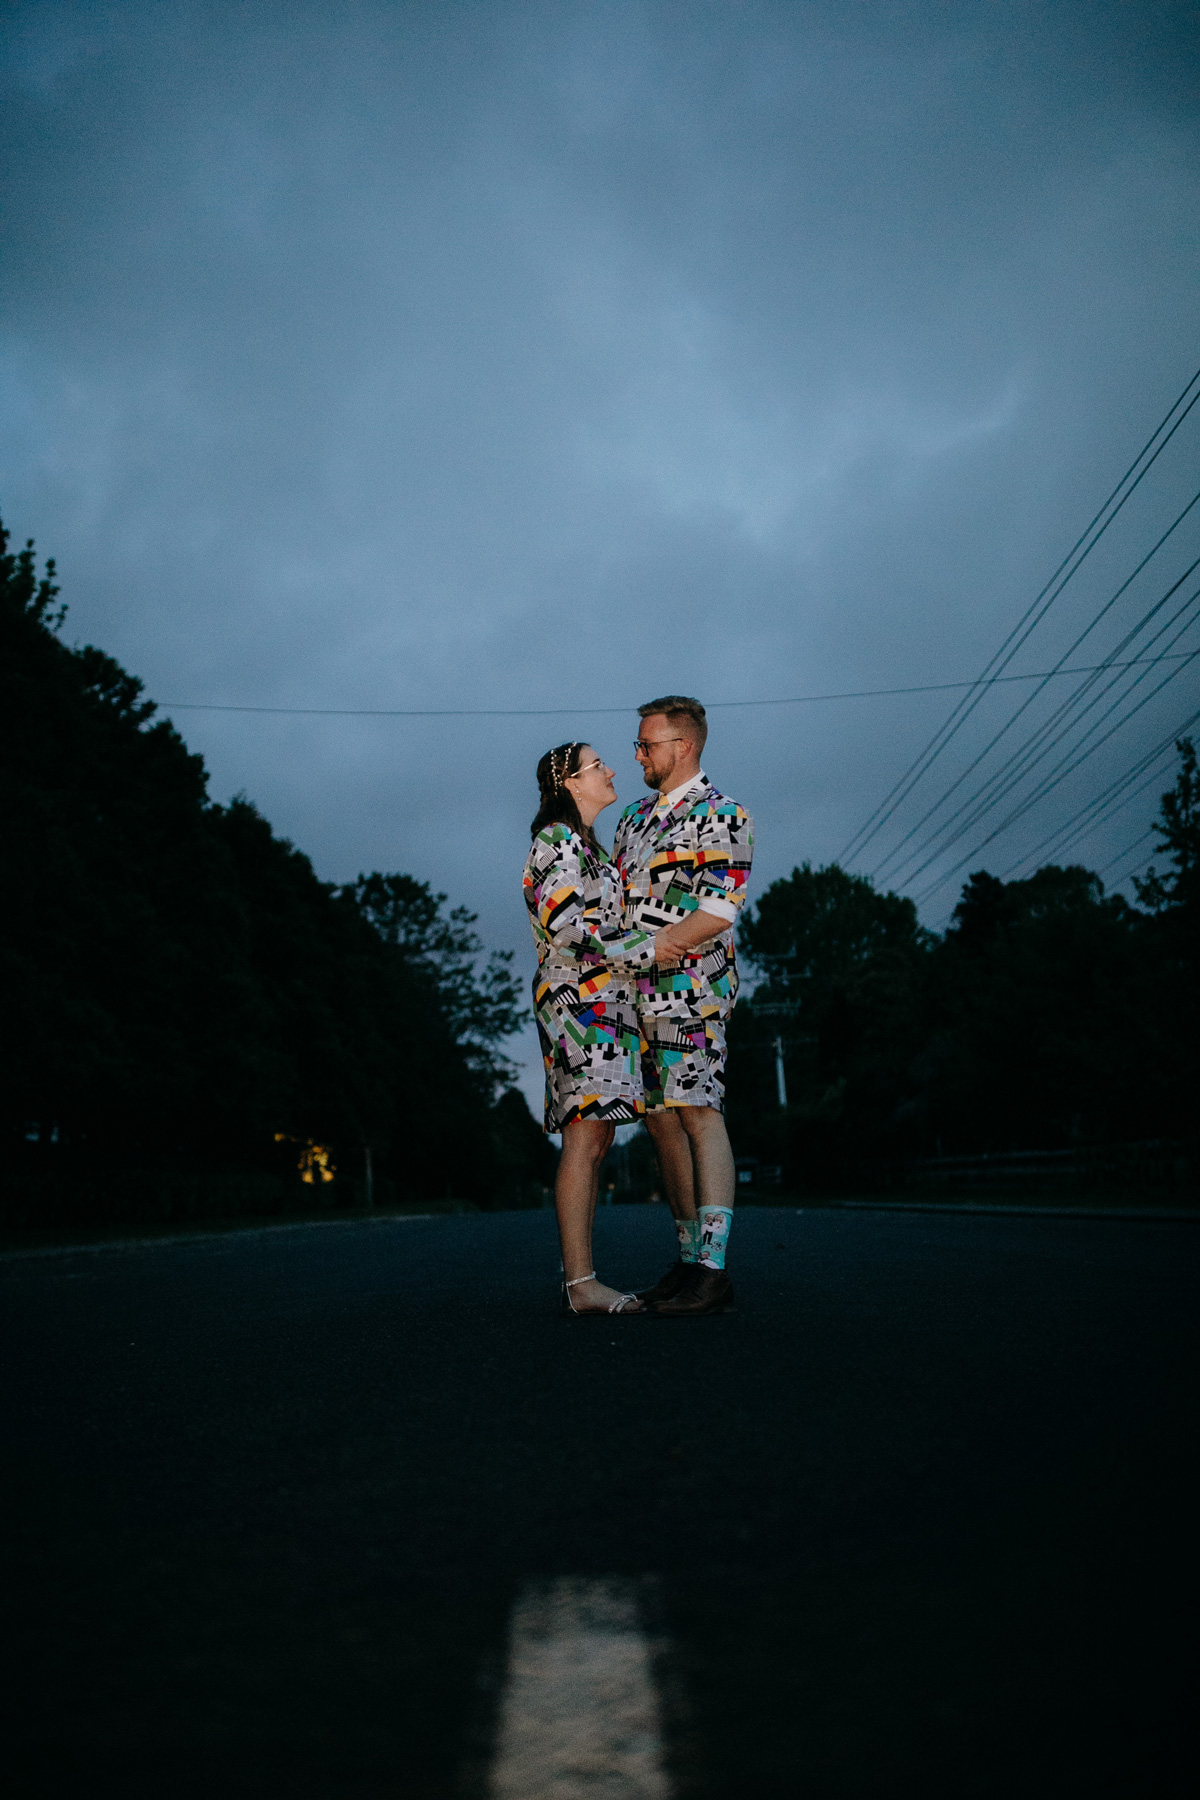 coatesville settlers hall wedding auckland bride and groom in oppo suits night photos by sarah weber photography